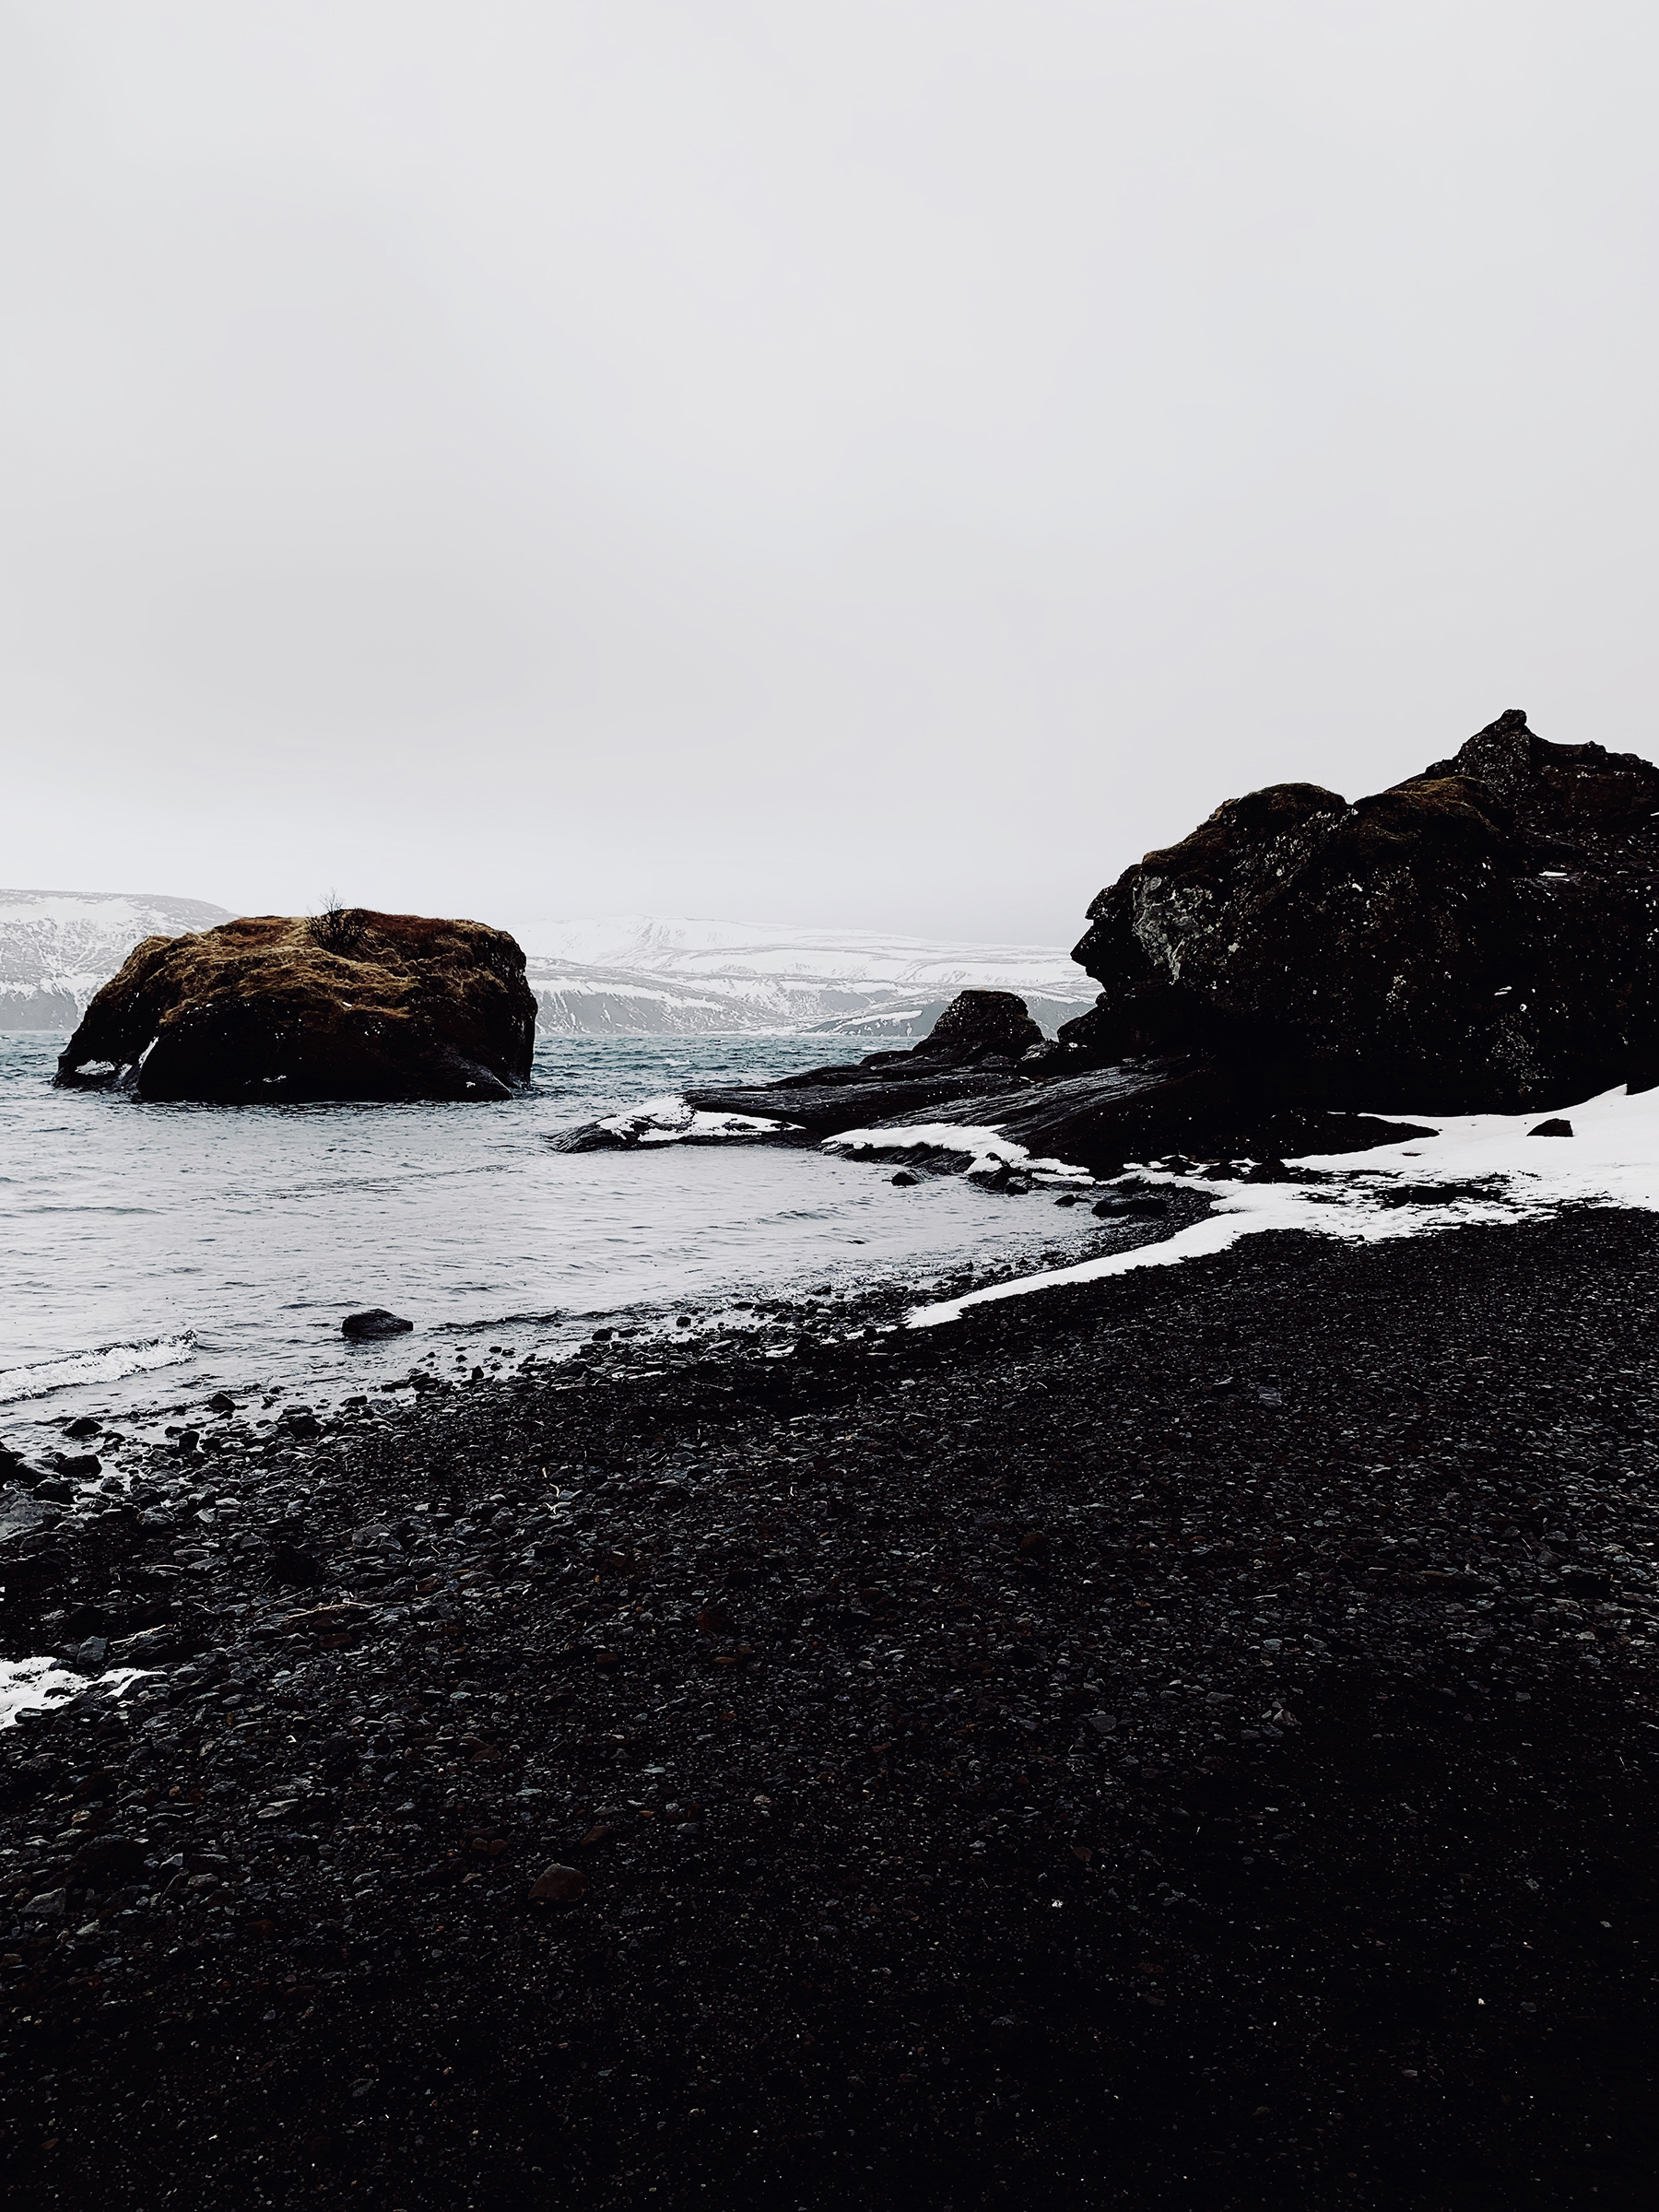 Processed with VSCO with 10 preset